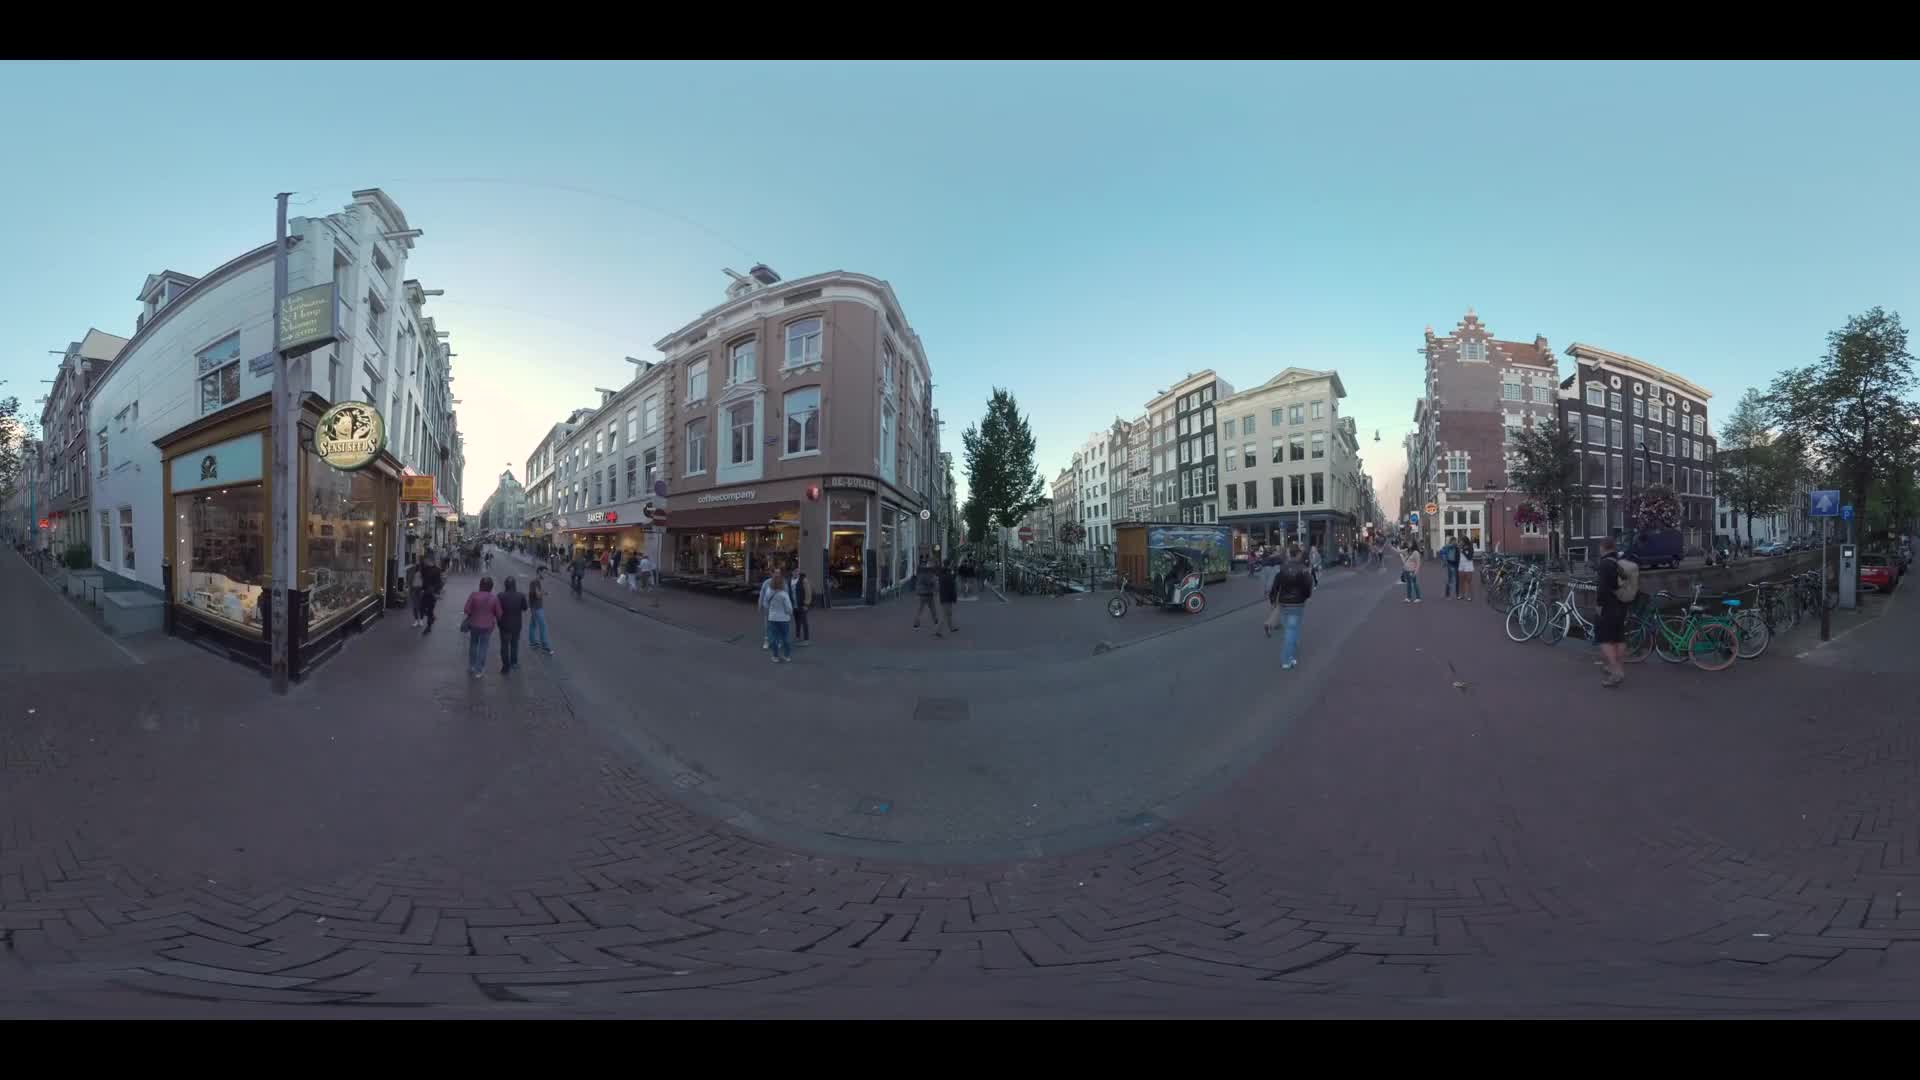 AMSTERDAM, NETHERLANDS - AUGUST 09, 2016: 360 VR video. Oude Doelenstraat with stores and cafes and people walking there. View with houses, canal and parked bikes